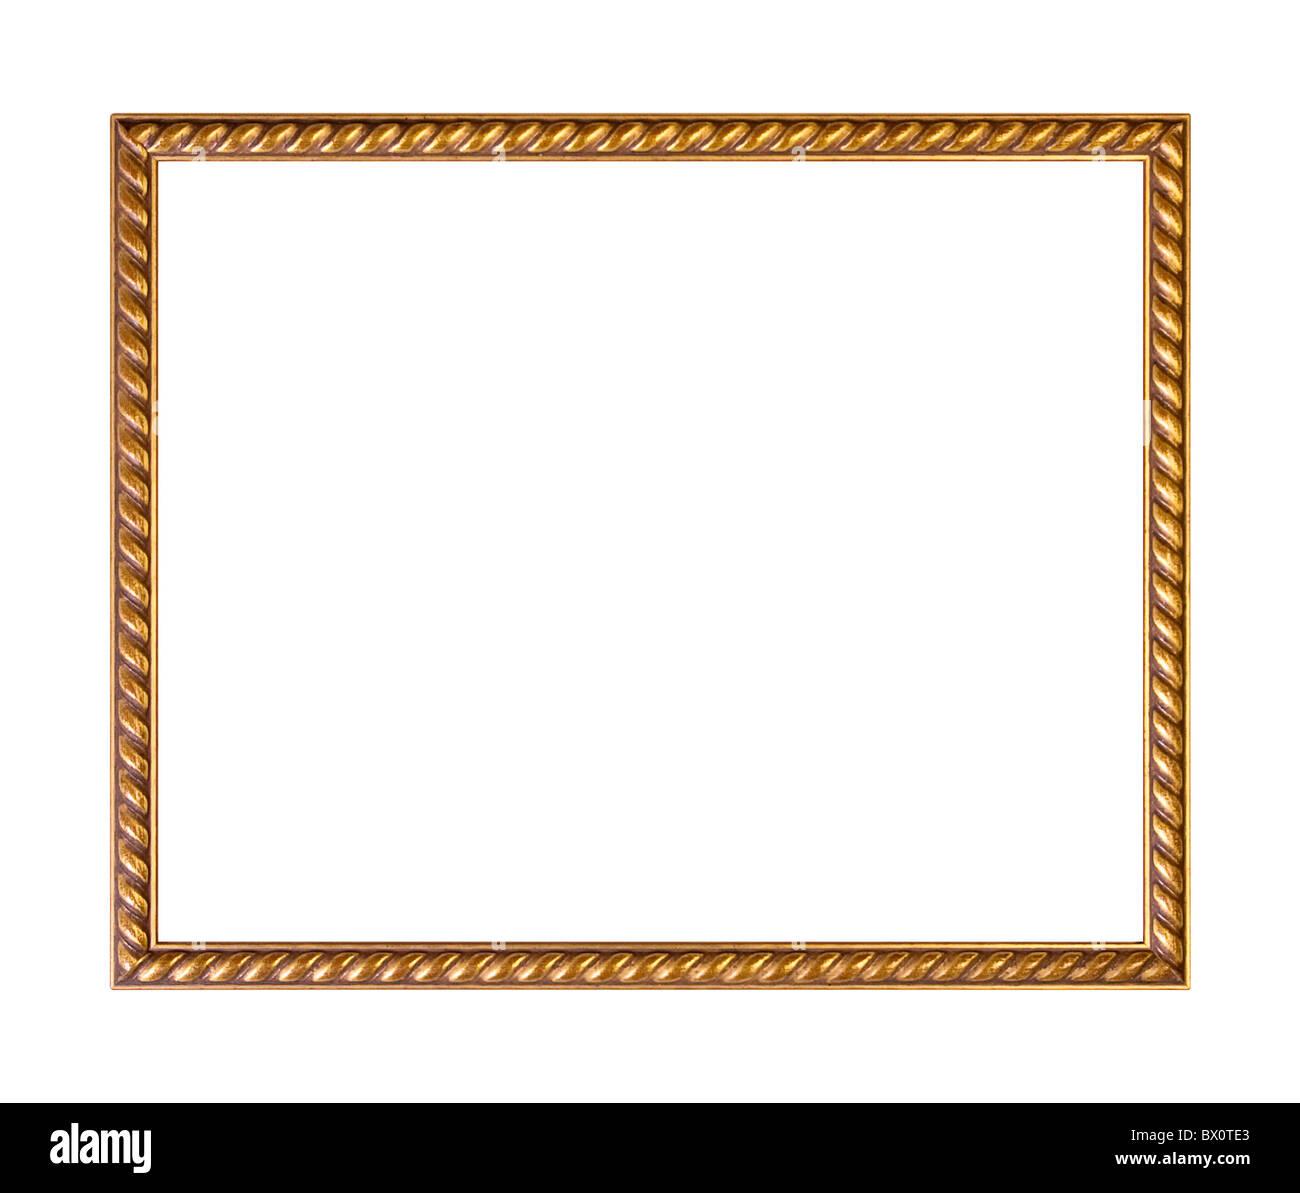 Golden ornately picture frame, isolated on white - Stock Image